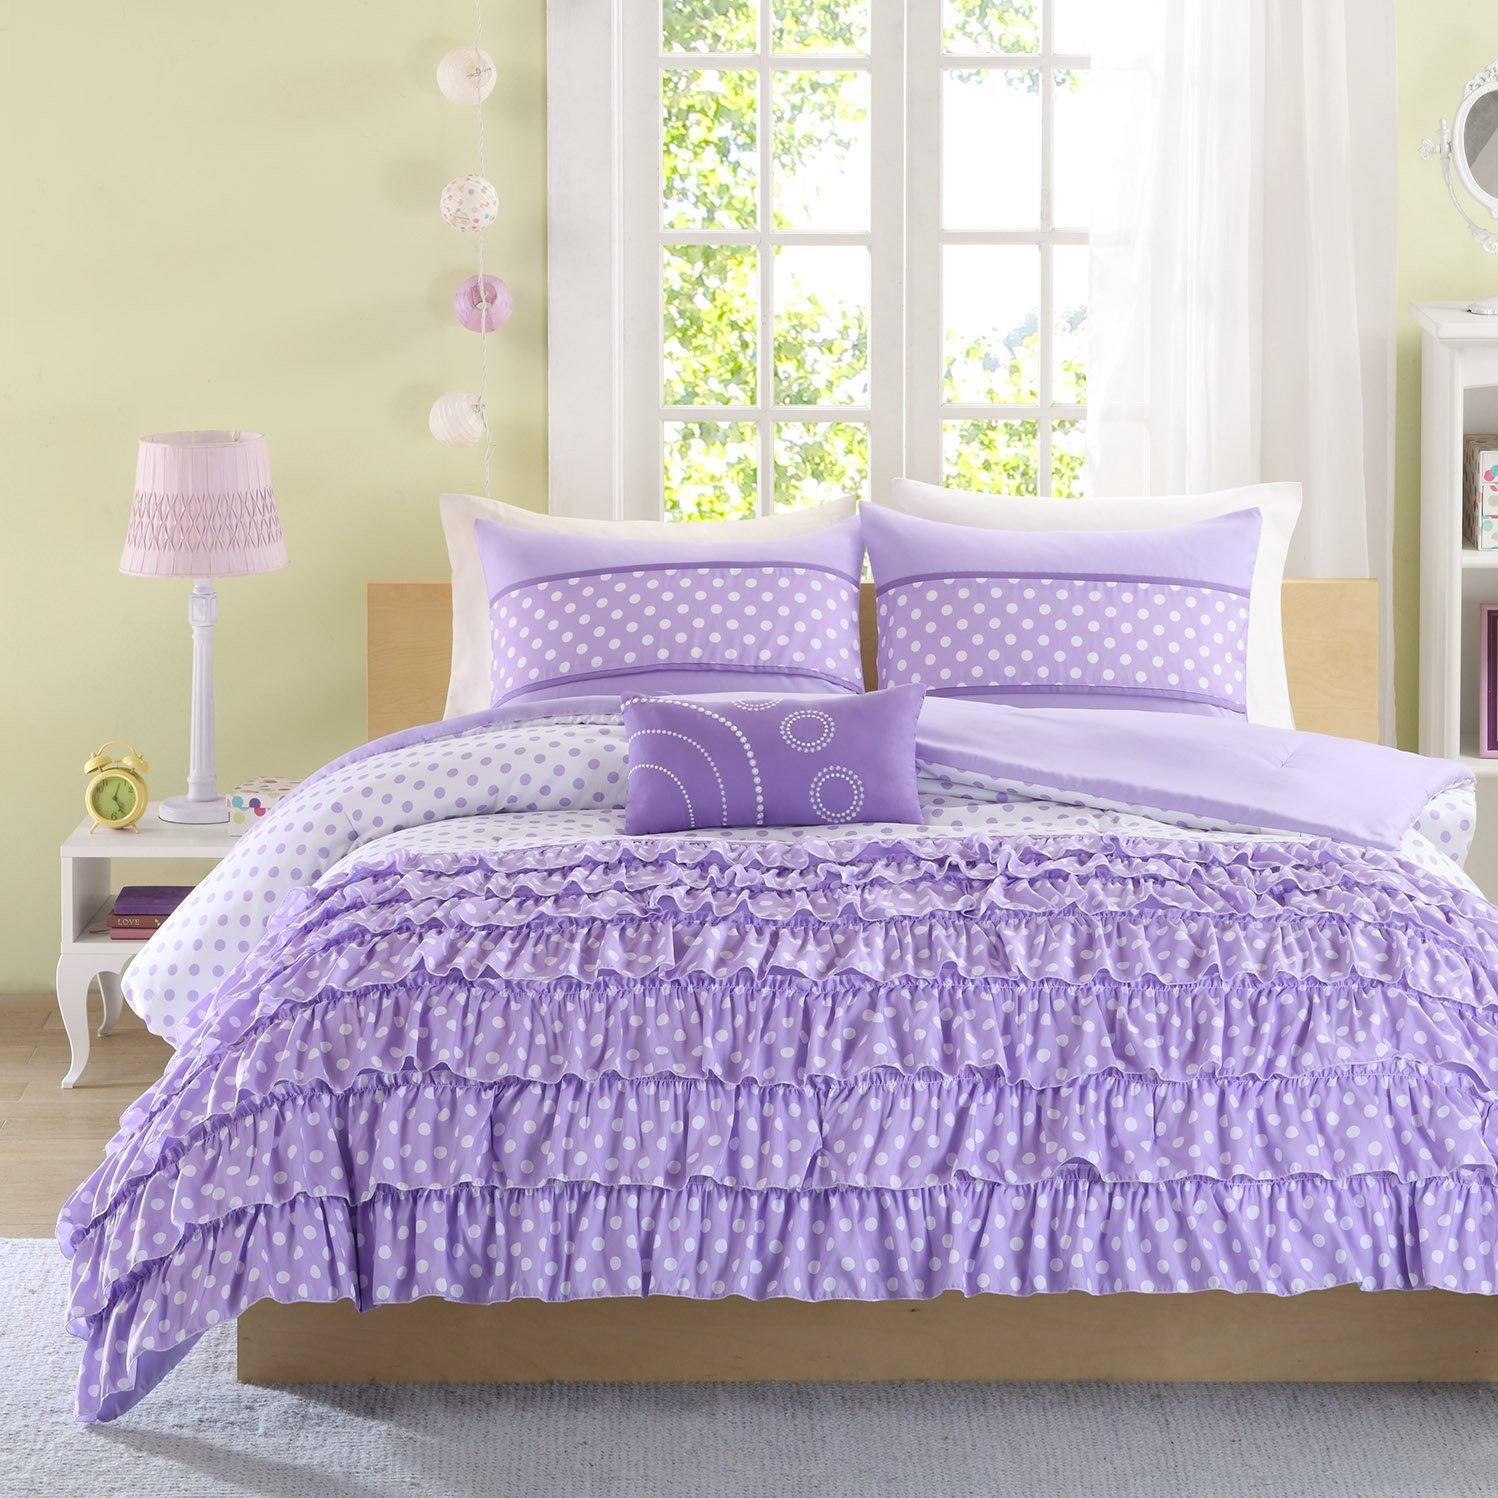 Dark Purple Comforter Sets | Purple Comforter Sets Queen | Purple Comforter Sets